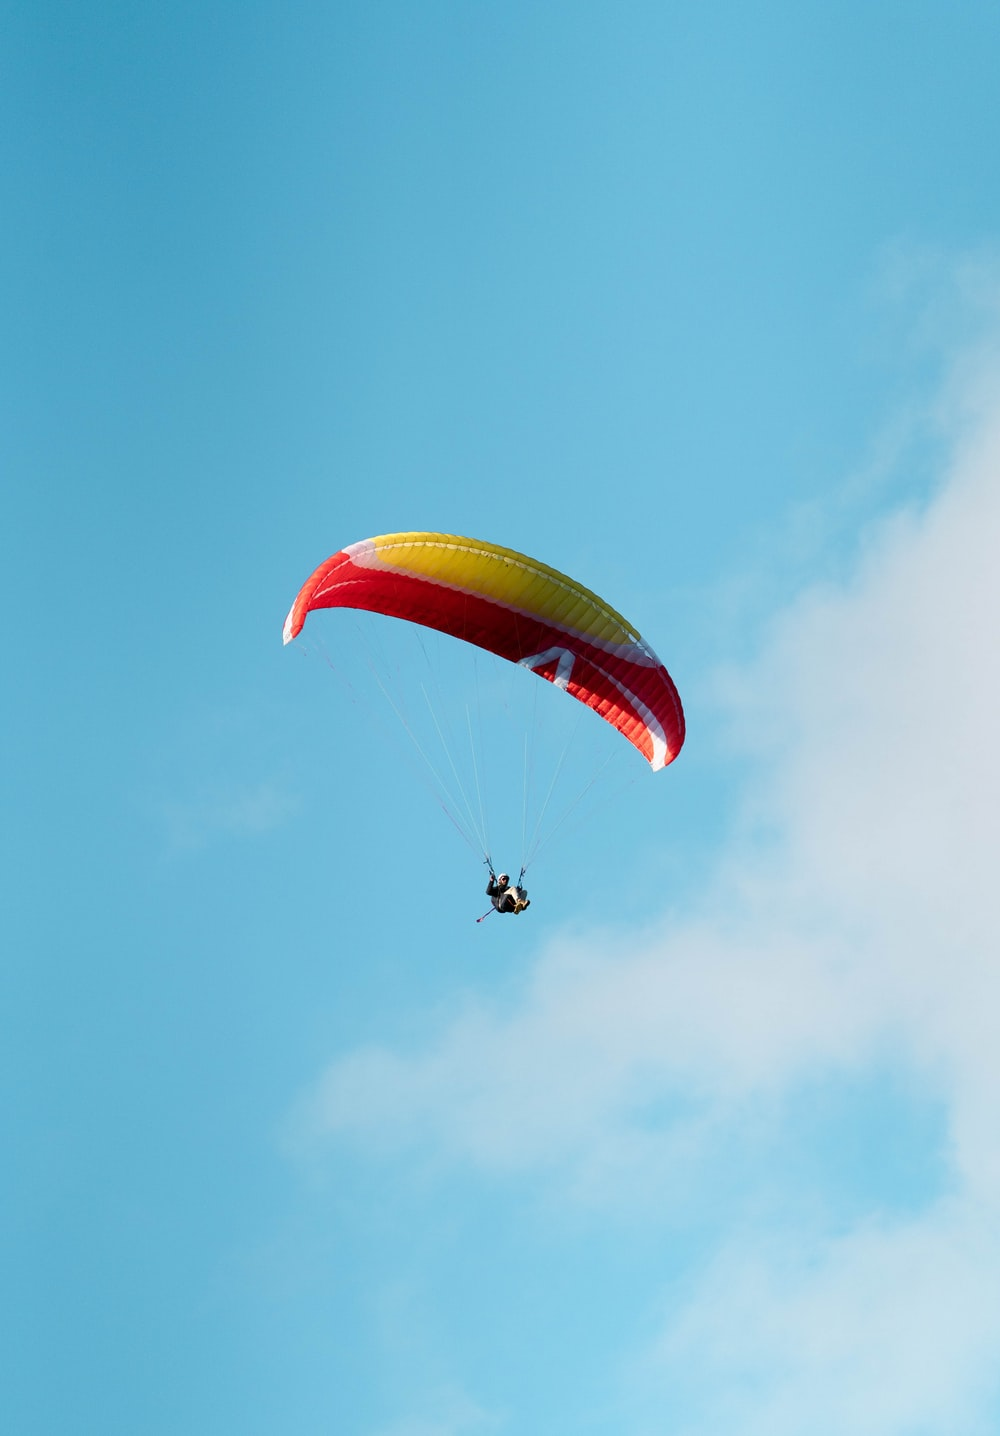 person in red and yellow parachute